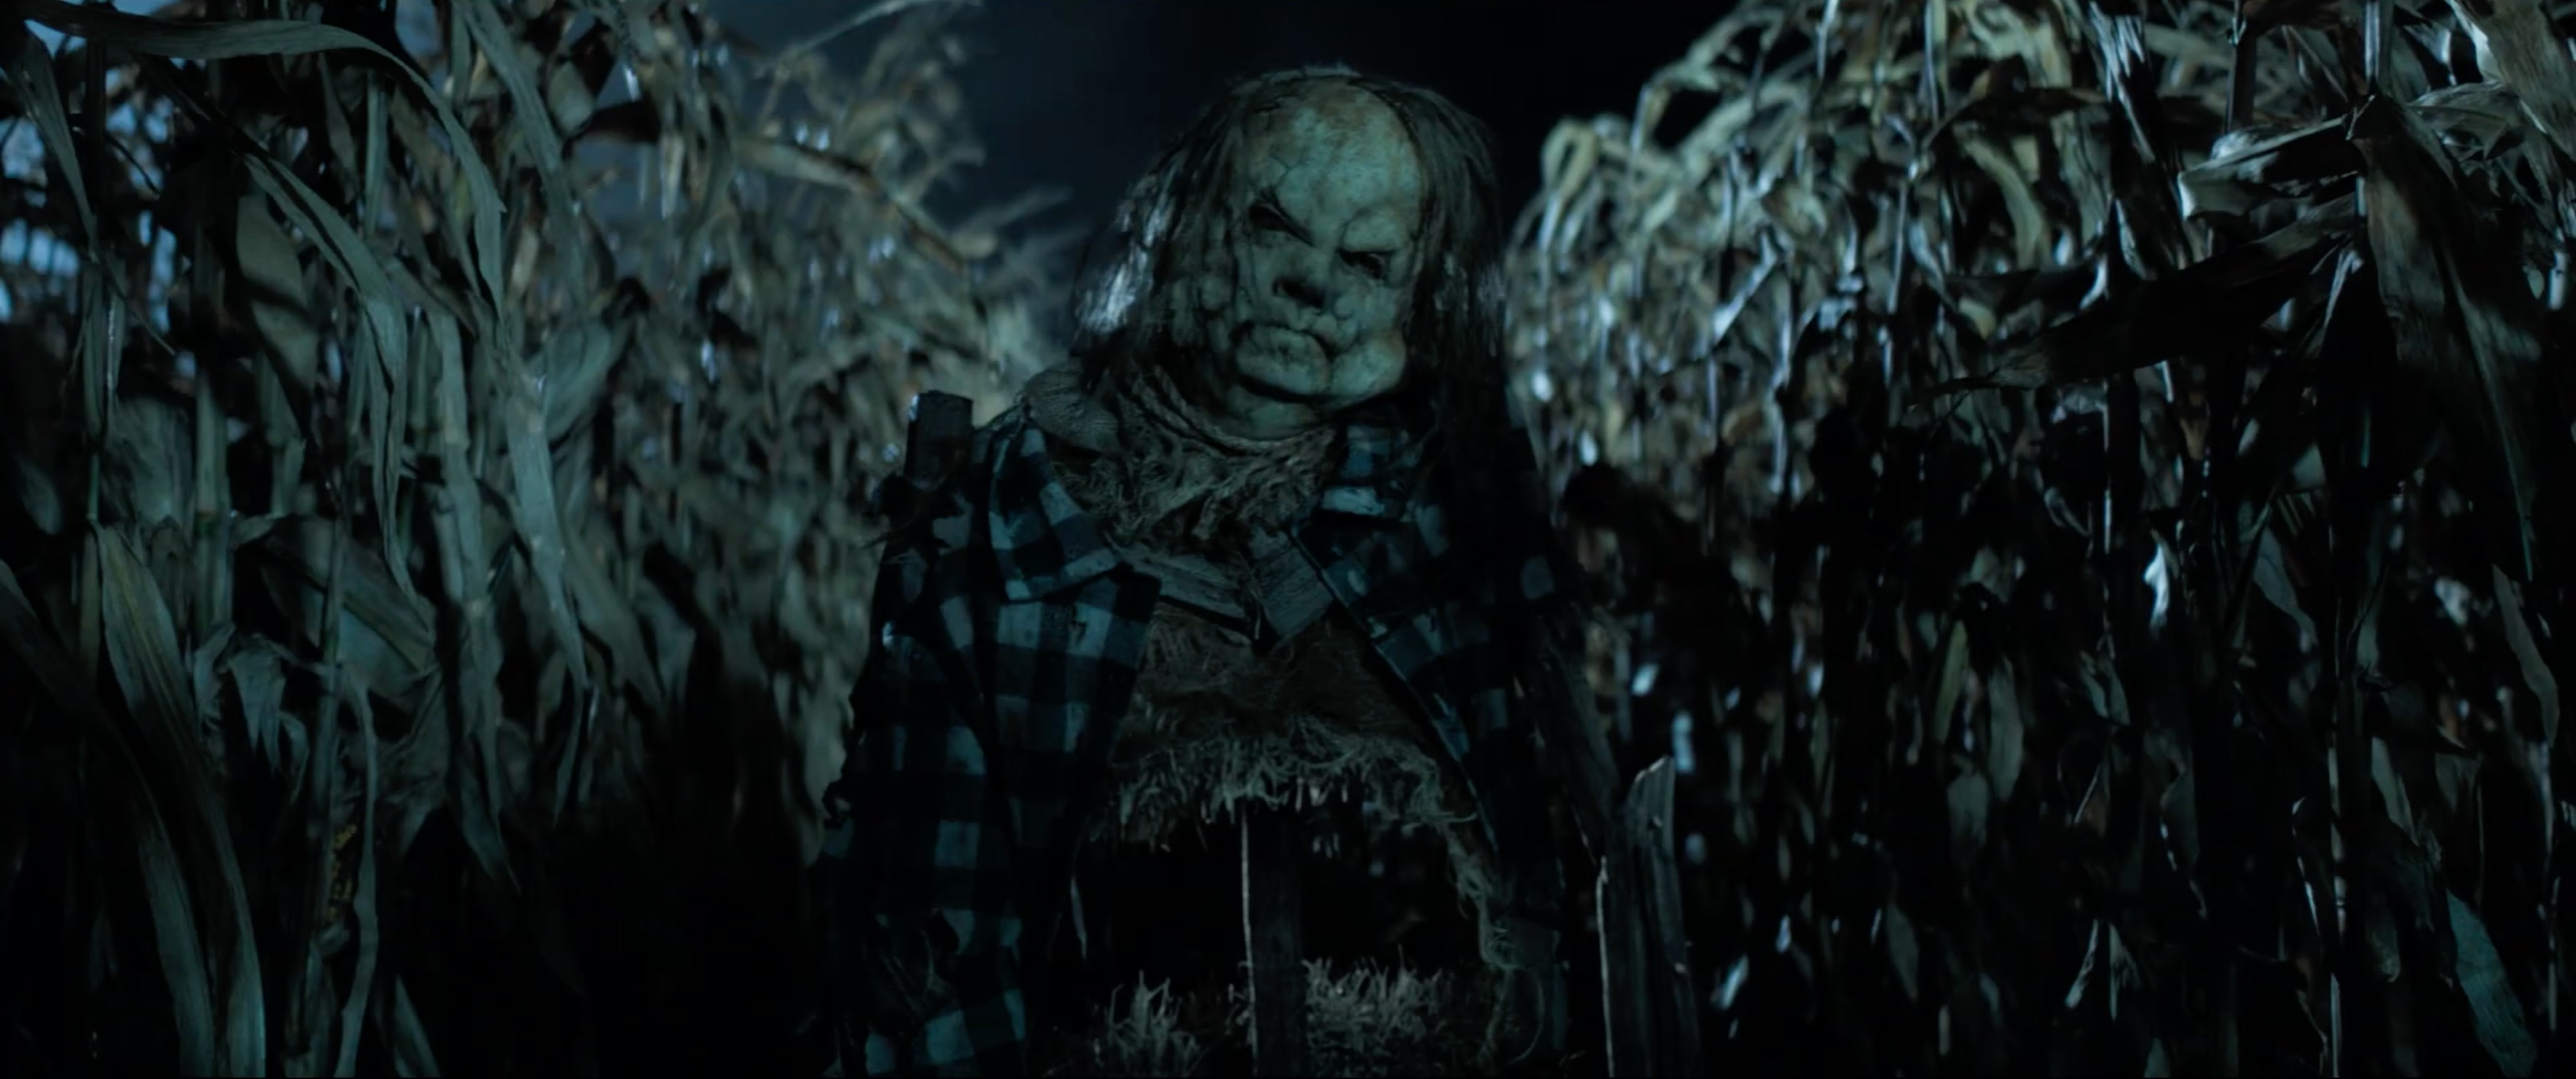 Scary Stories to Tell in the Dark Official Trailer